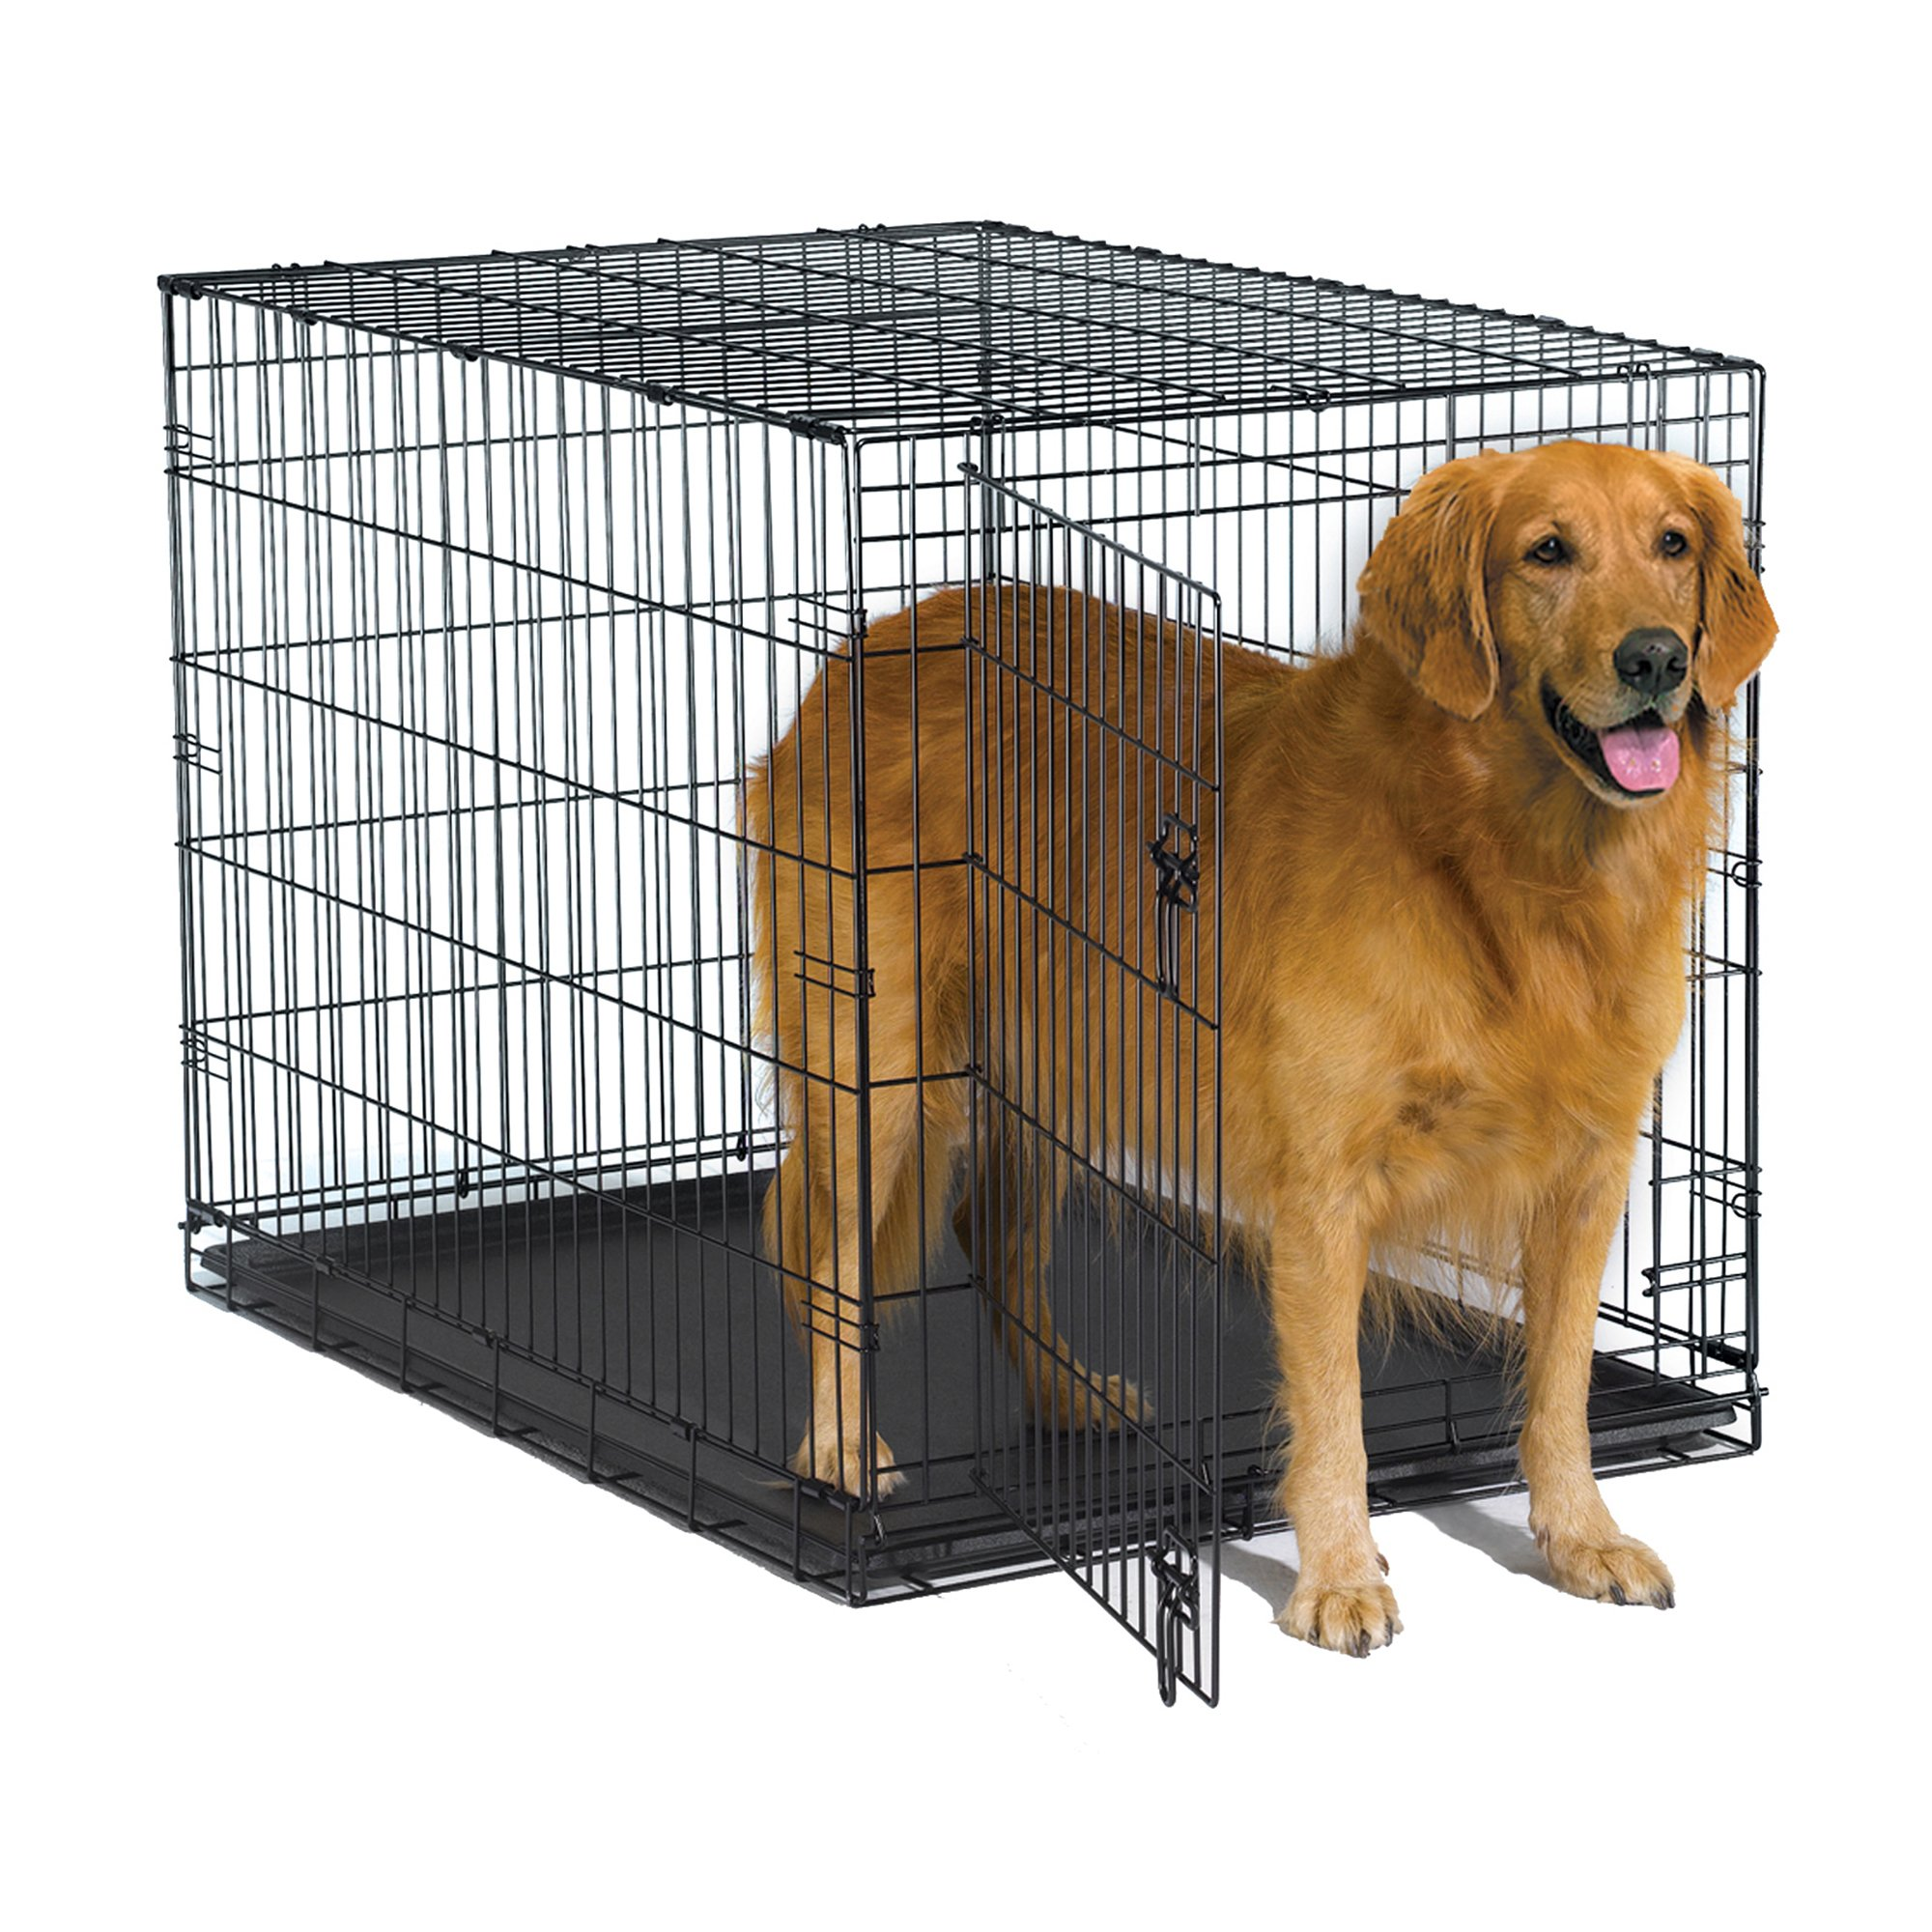 New World 42'' Folding Metal Dog Crate, Includes Leak-Proof Plastic Tray; Dog Crate Measures 42L x 30W x 28H Inches, Fits Large Dog Breeds by New World Crates